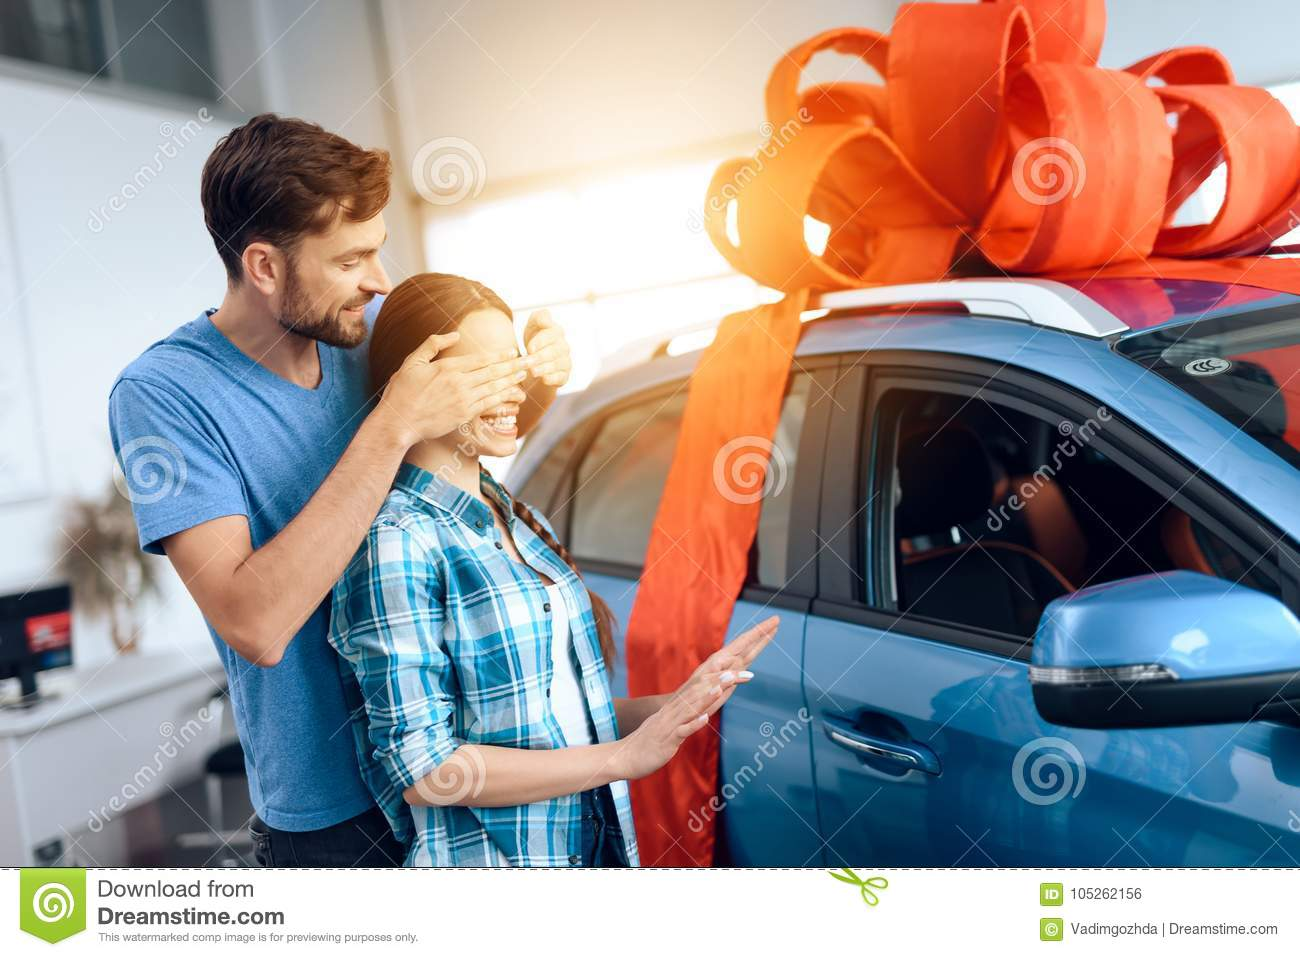 A man makes a gift - a car to his wife.